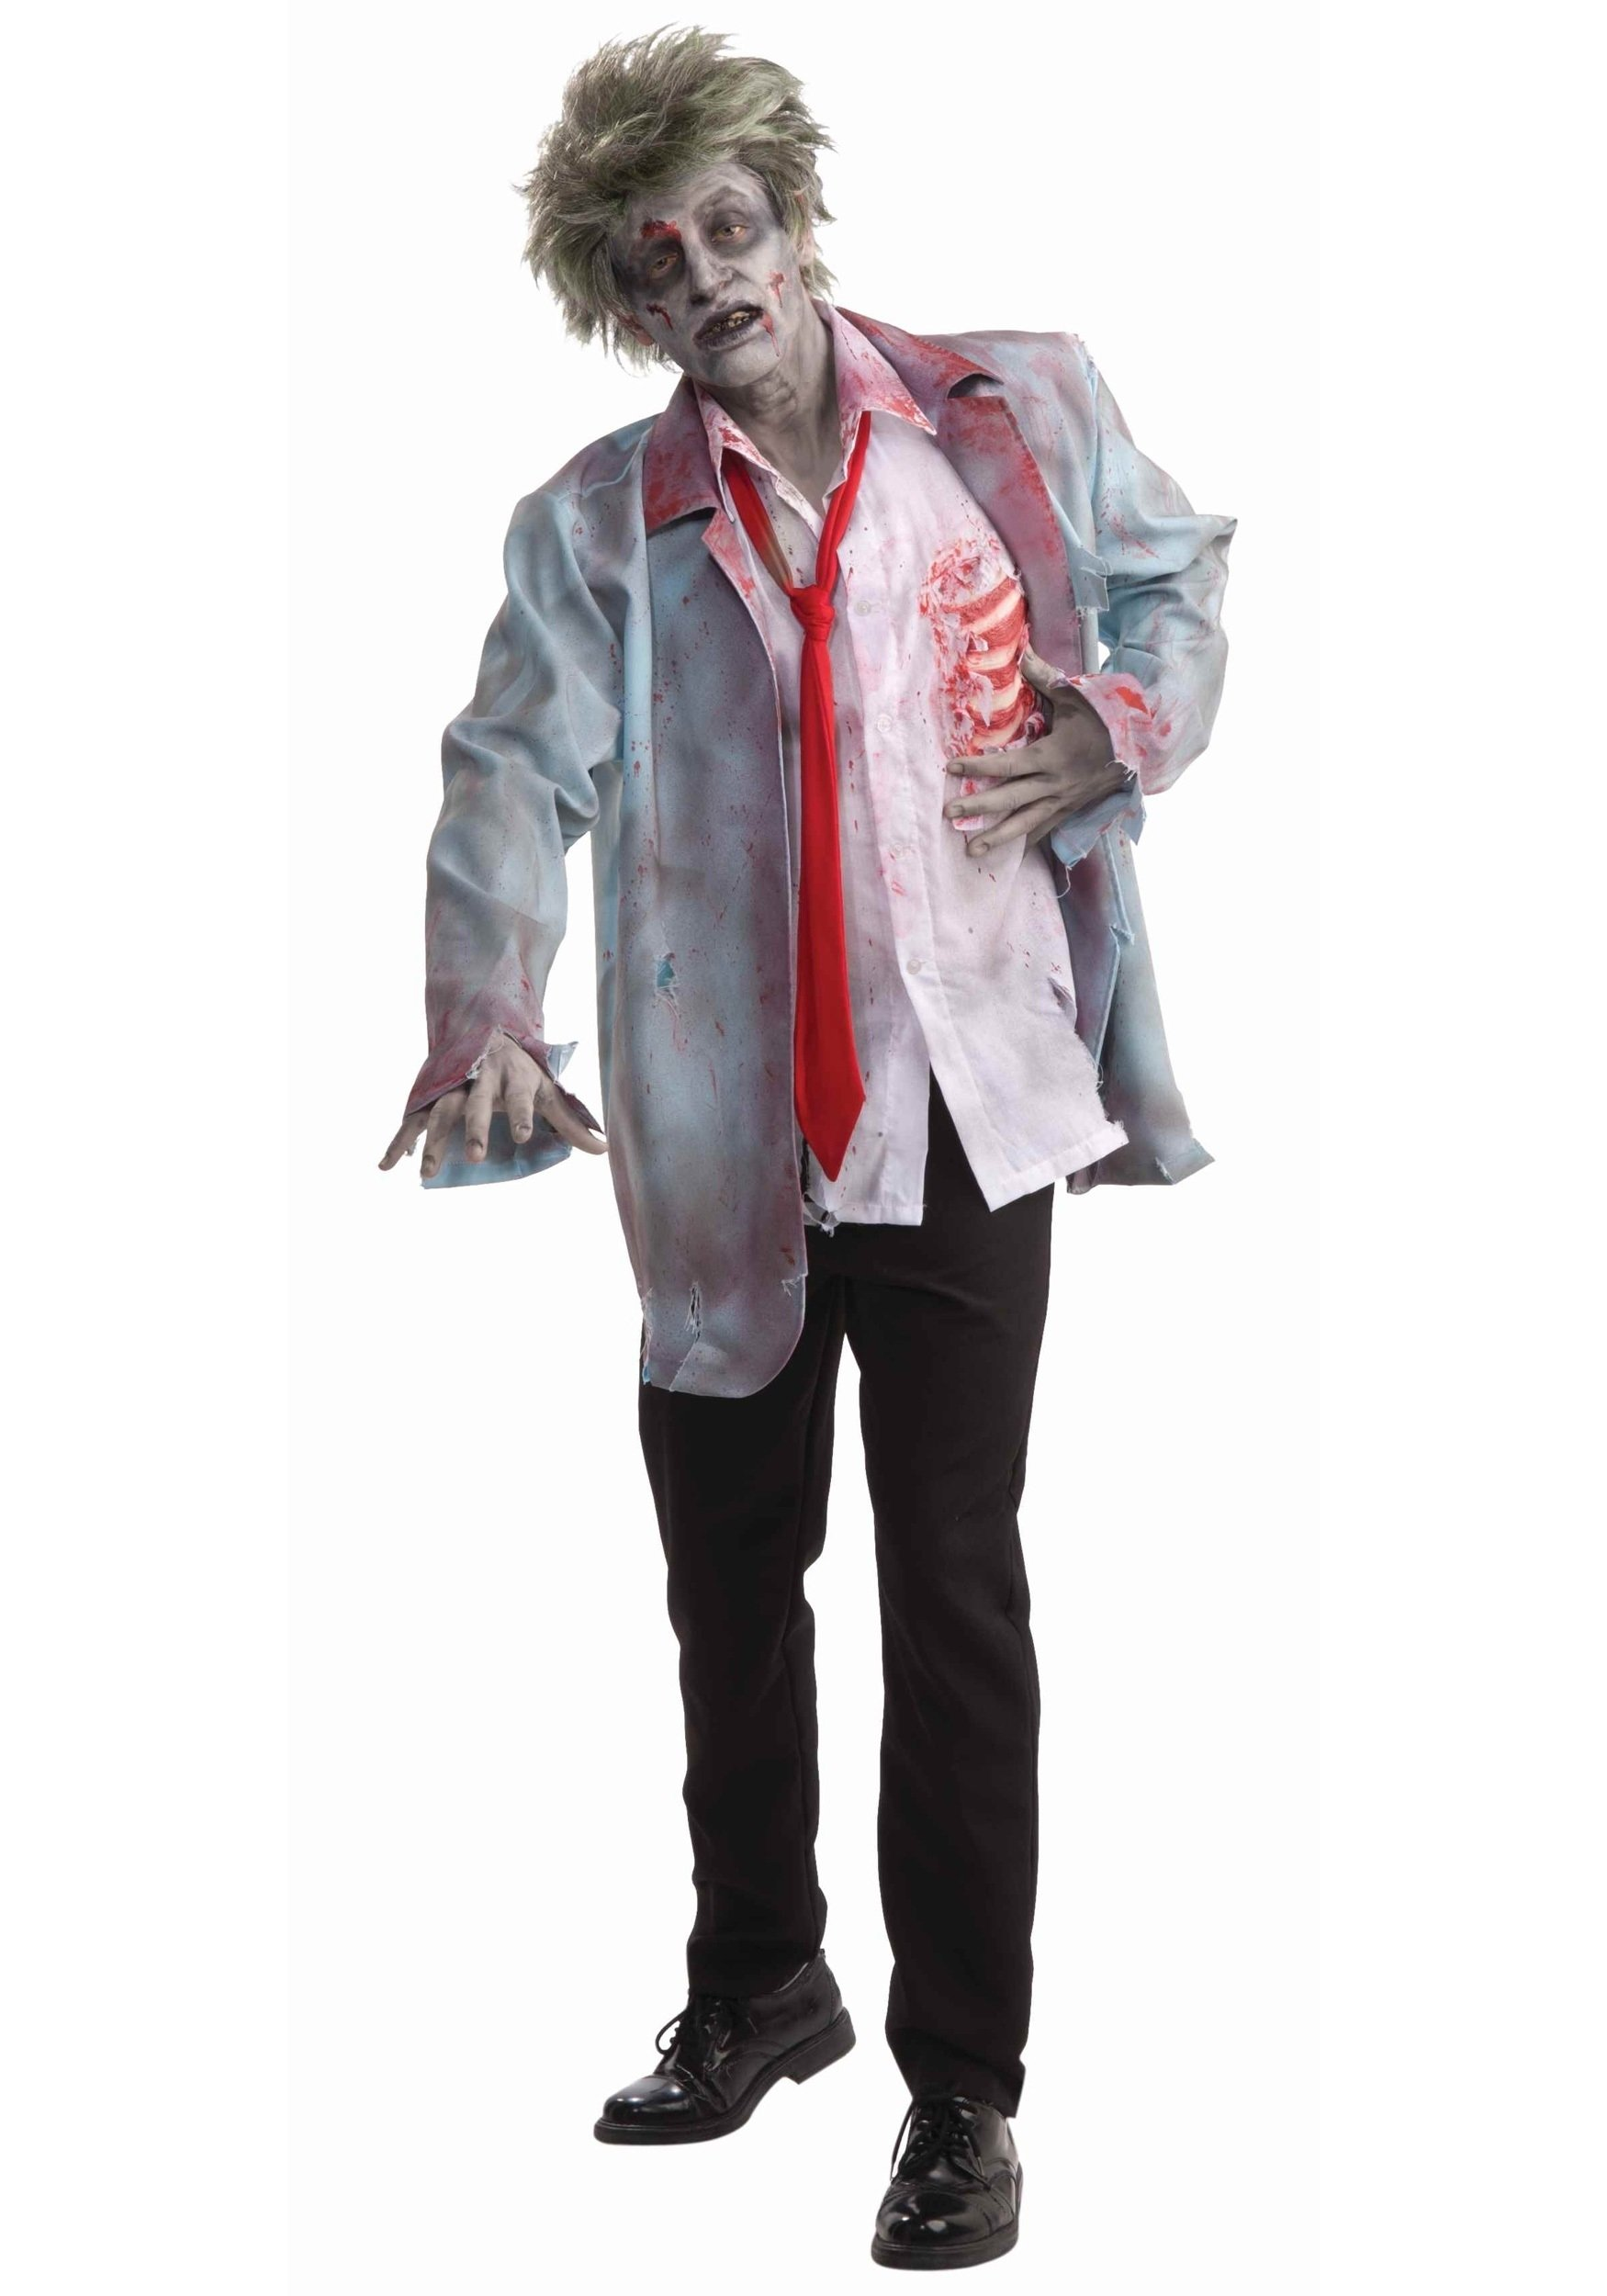 10 Ideal Scary Costume Ideas For Men creepy zombie husband costume adult zombie costume ideas 2020